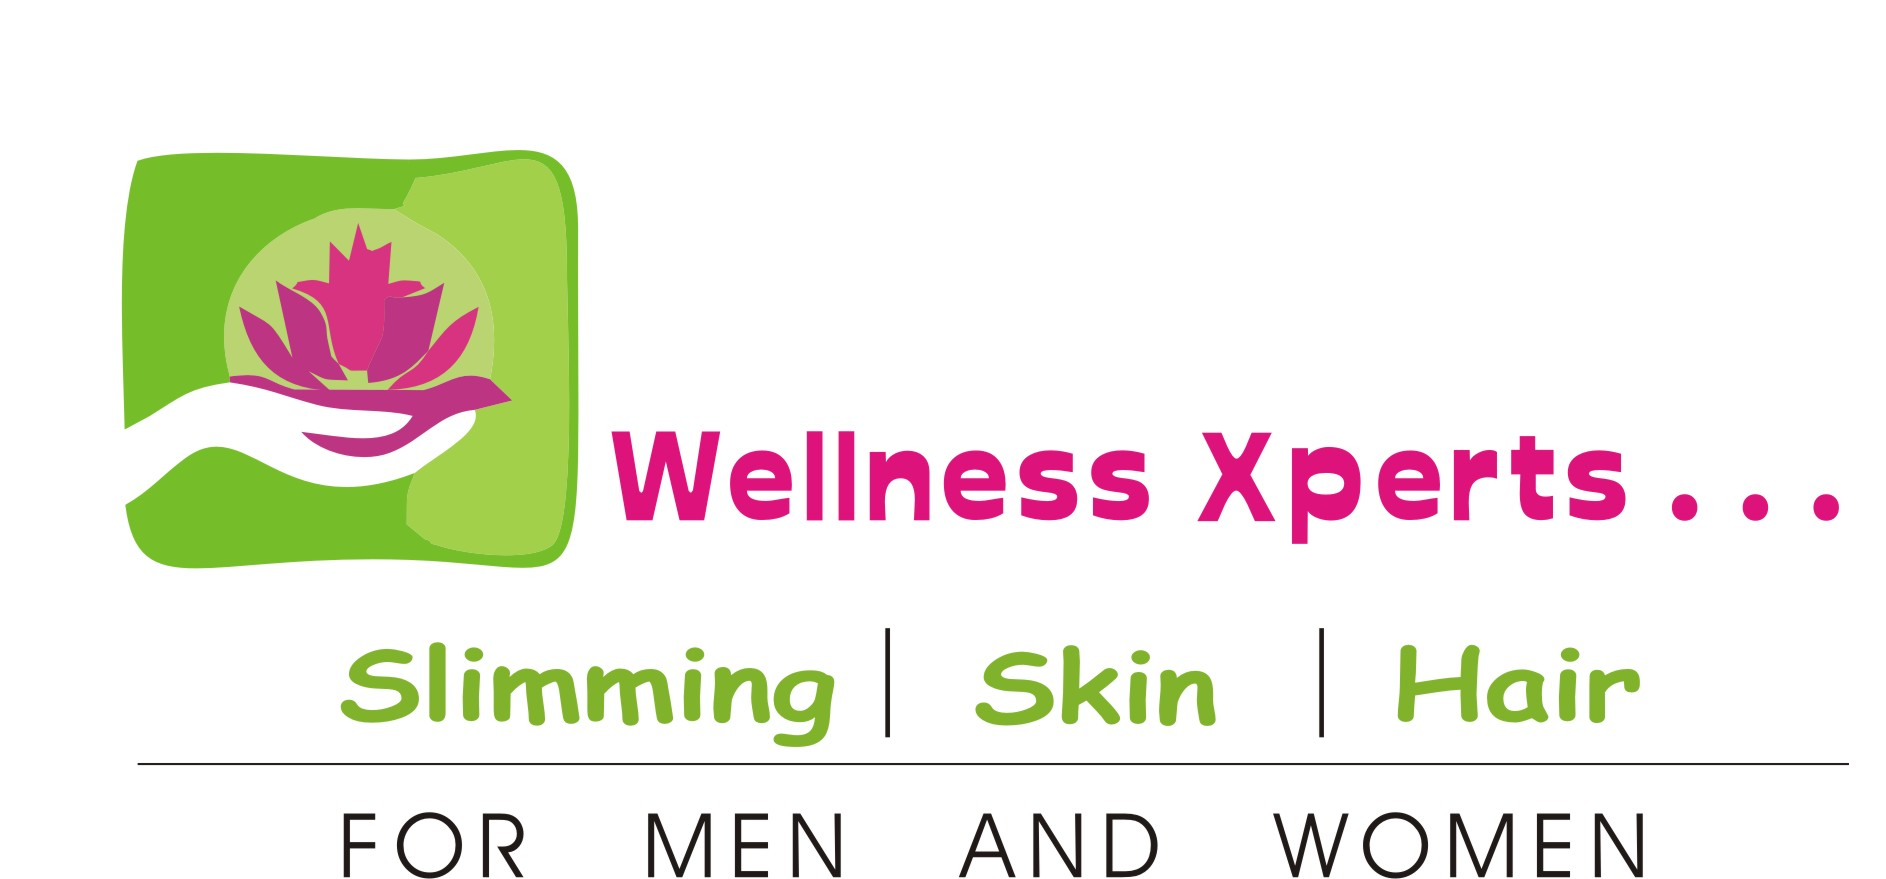 Wellness Xperts